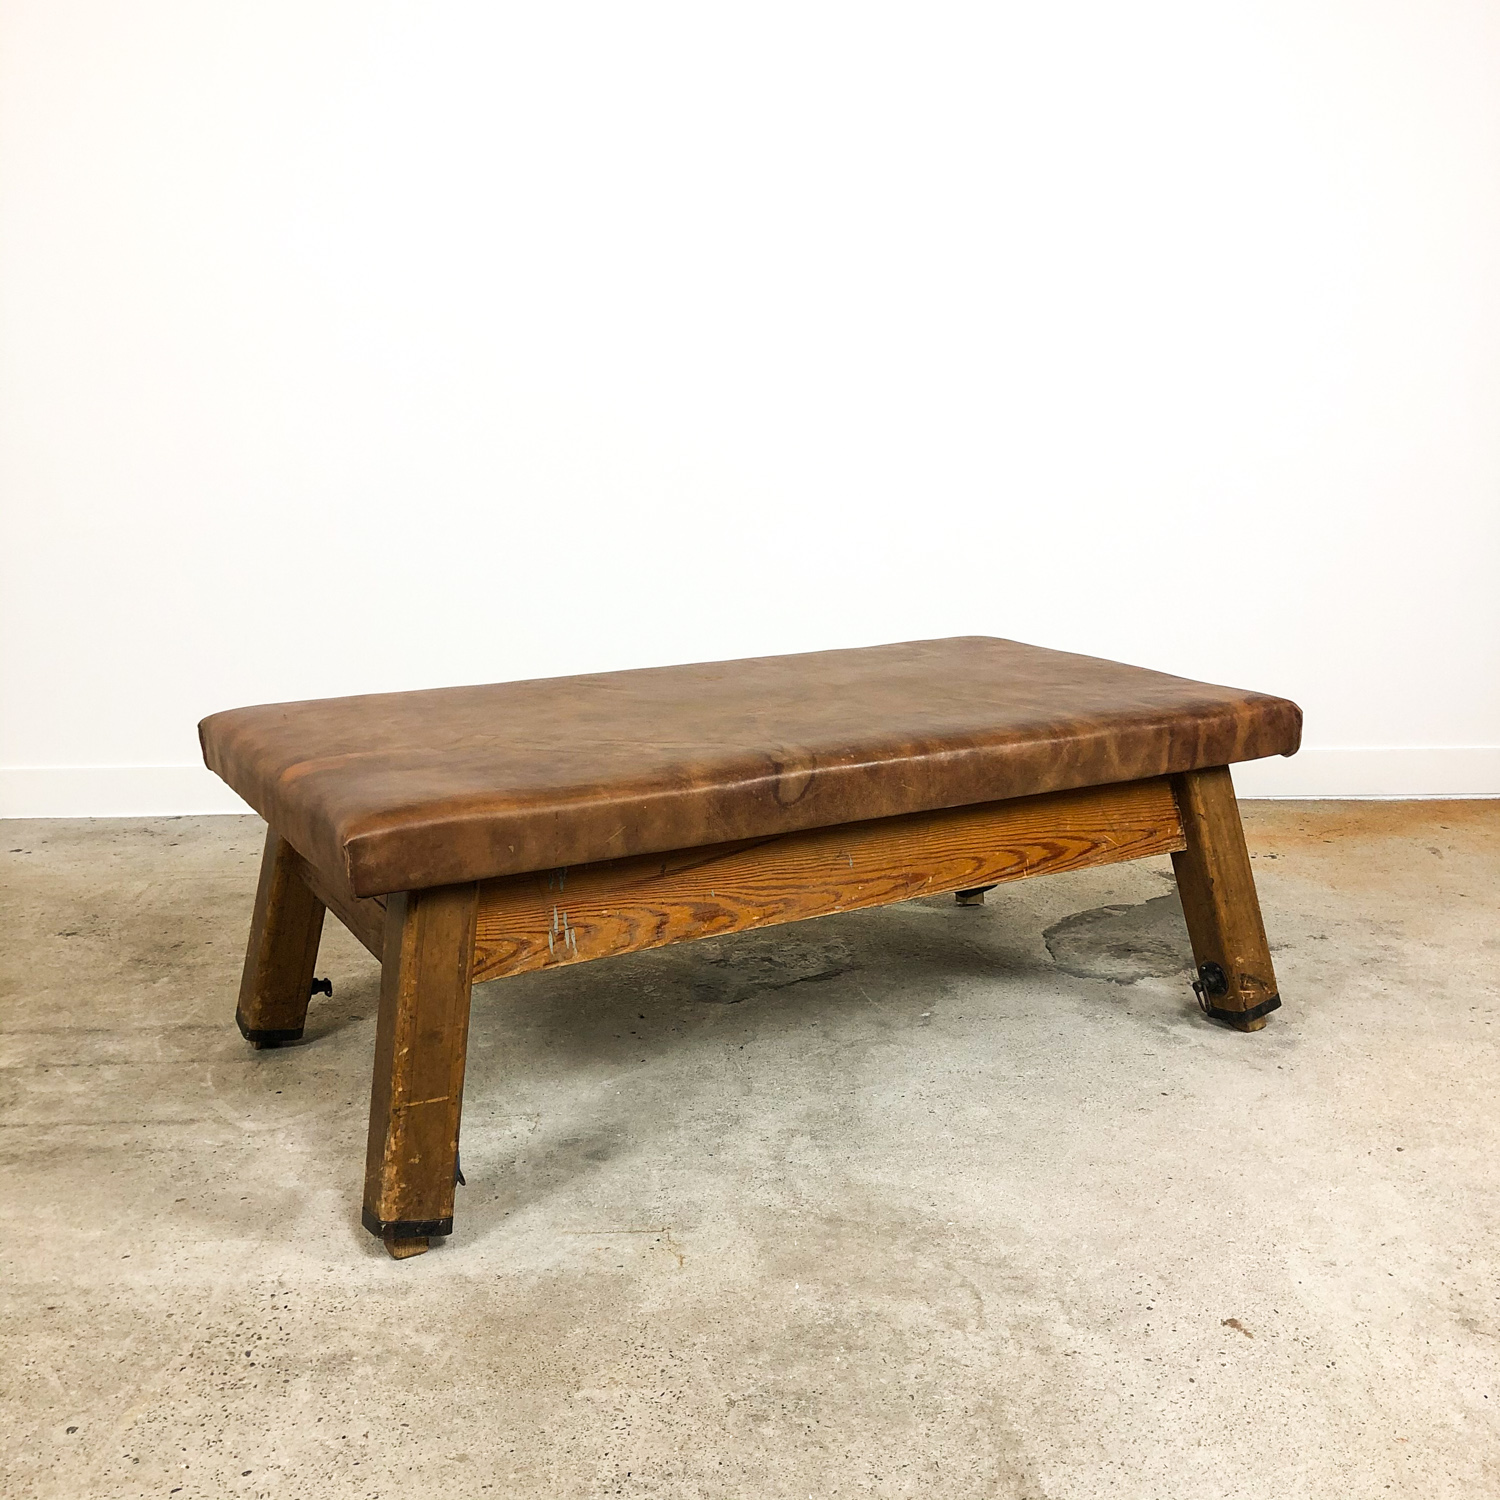 Vintage leather gym table bench